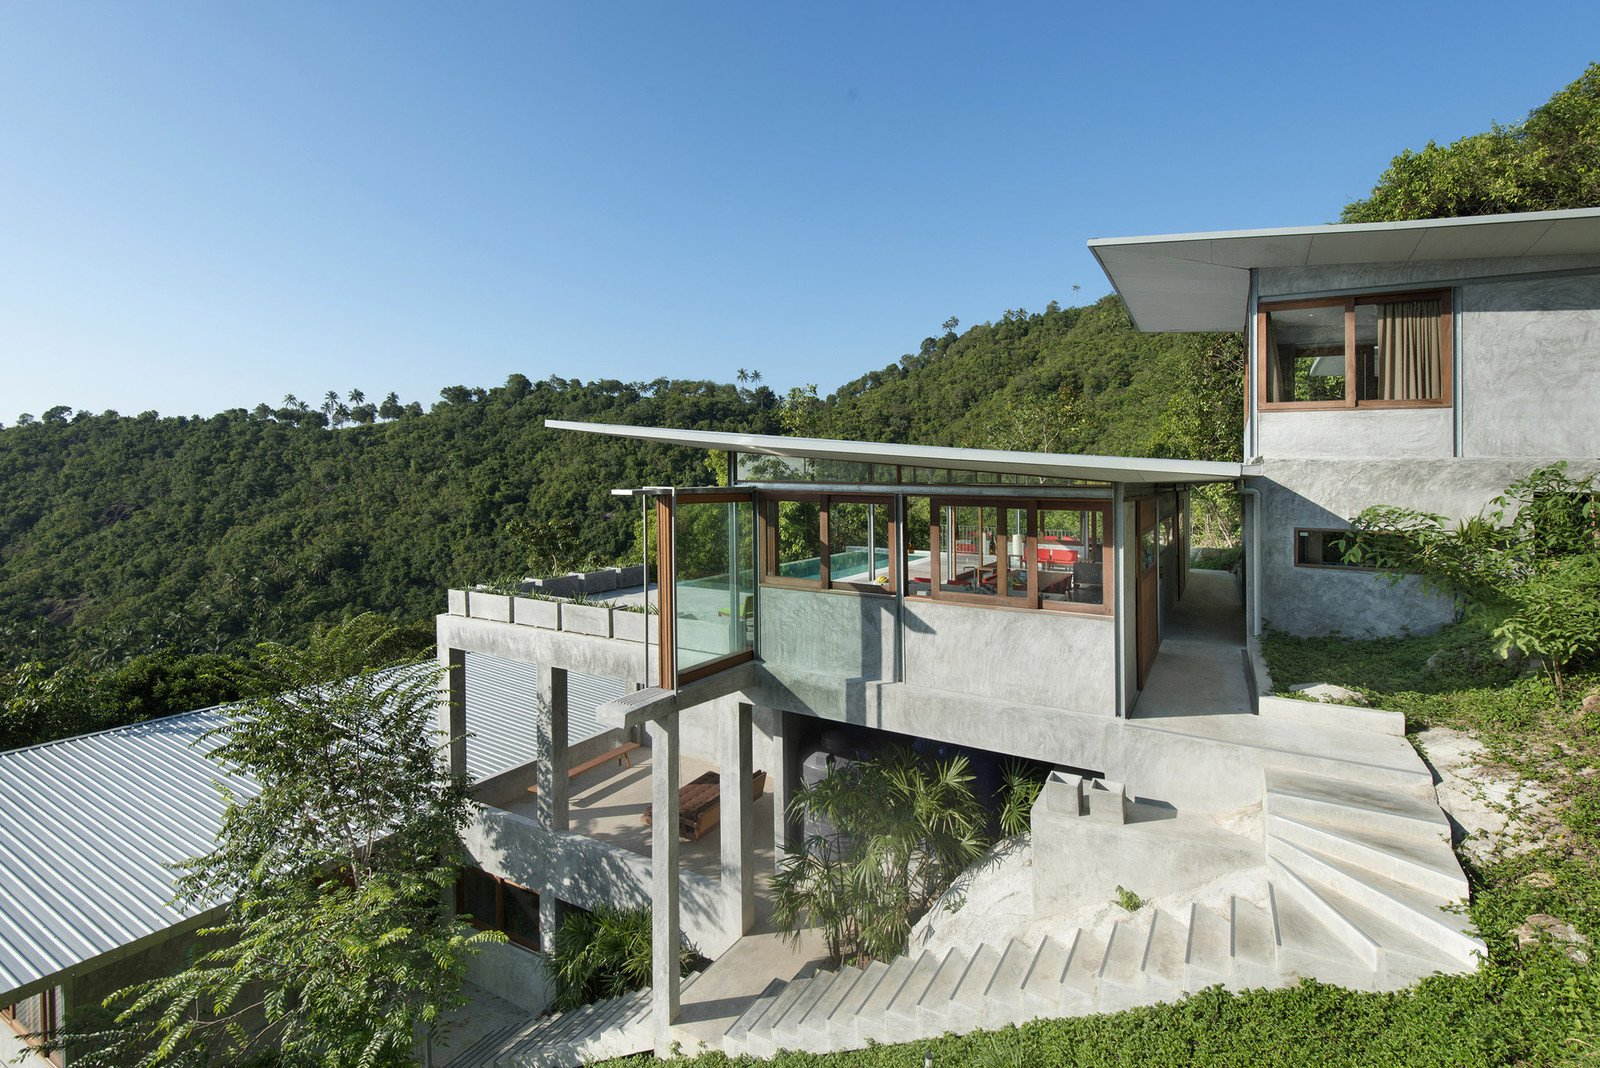 Sofa, Bed, Trees, Metal, Side Yard, Cooktops, Freestanding, Enclosed, One Piece, Outdoor, Slope, Shrubs, Walkways, and Grass  Outdoor Metal Cooktops Photos from Take a Trip to This Photographer-Designed Concrete Home in Thailand